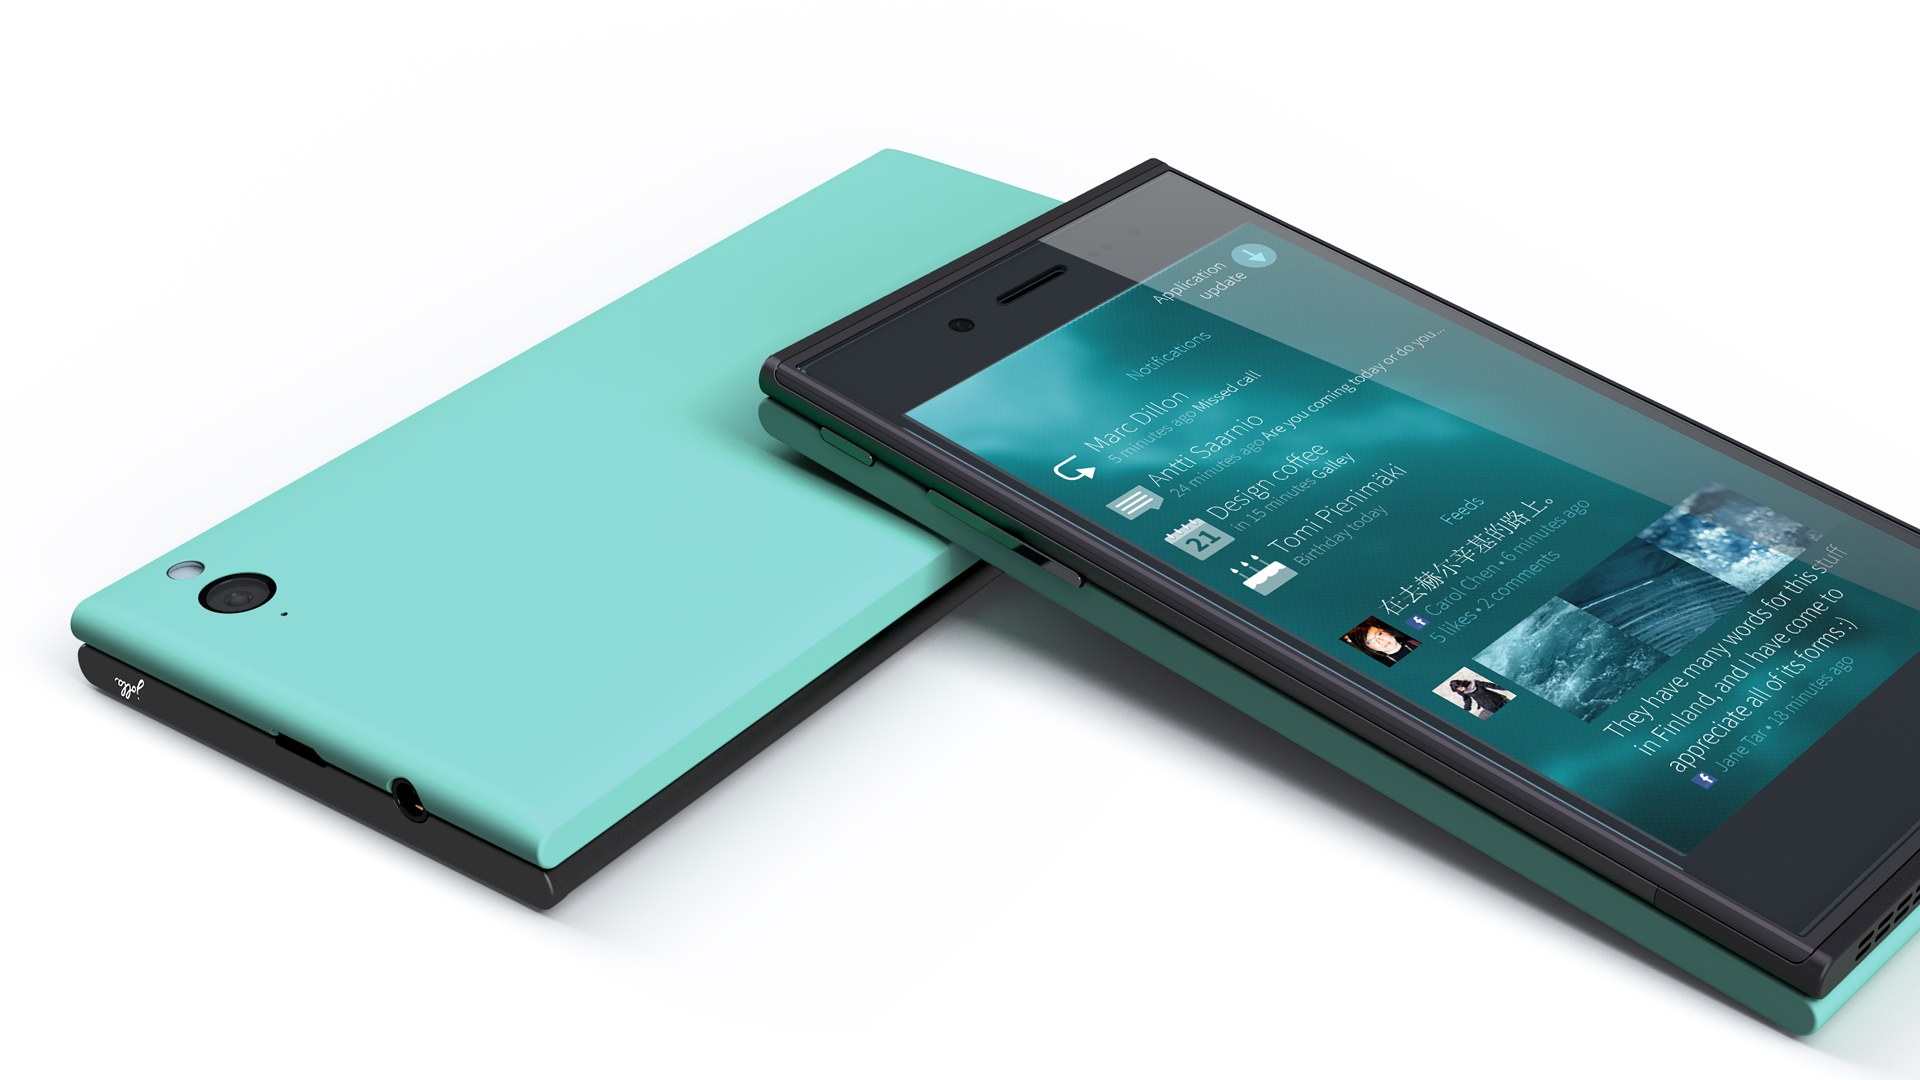 Jolla Smartphone Now Available in India